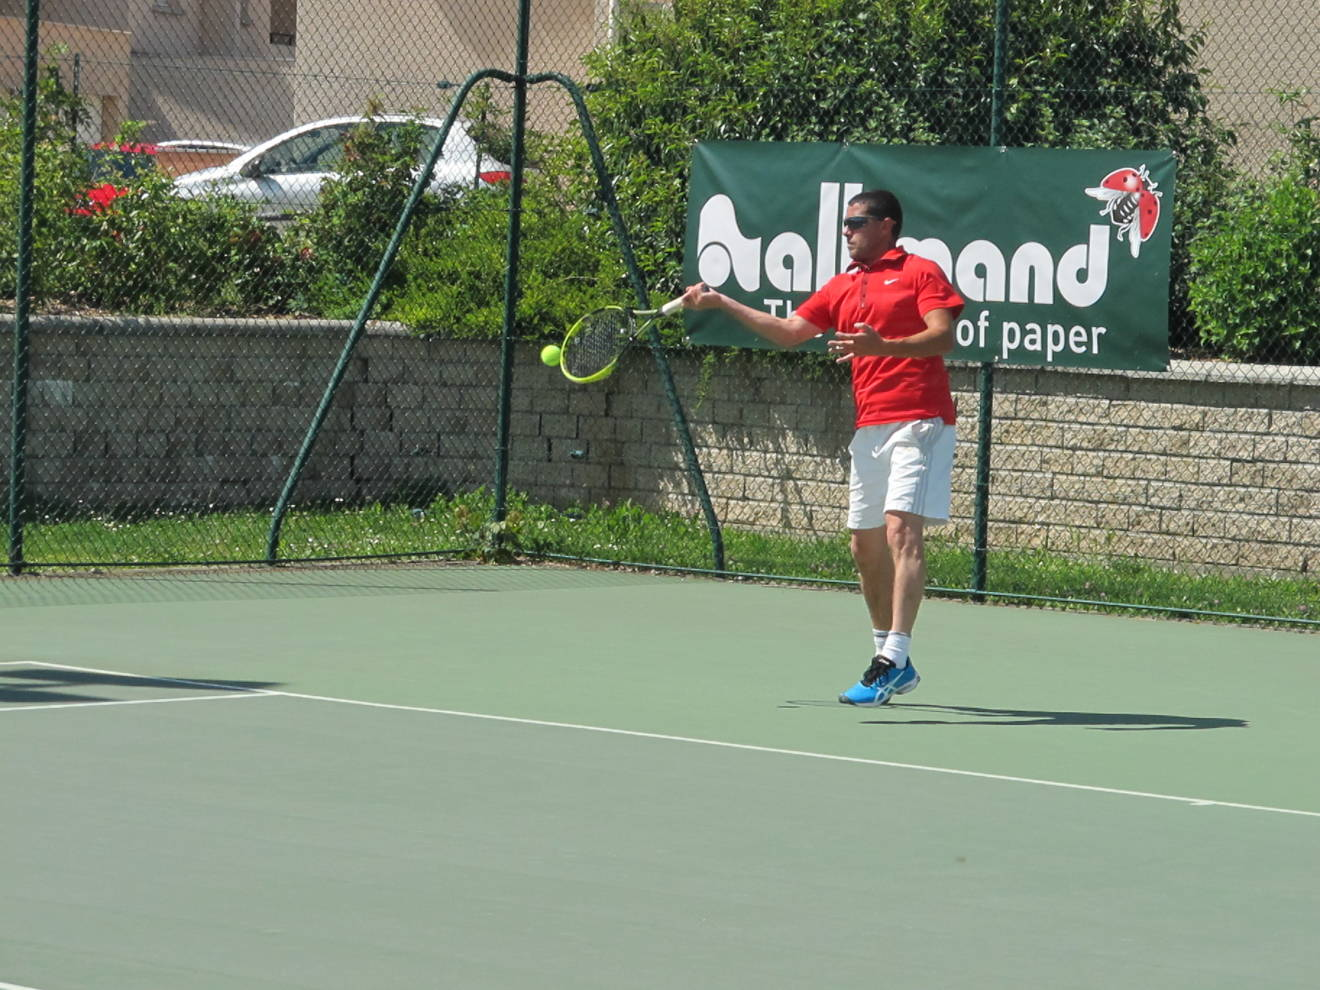 35 ans h finale laurent chaleyssin tc crossey 4 fco for Club de tennis interieur saguenay